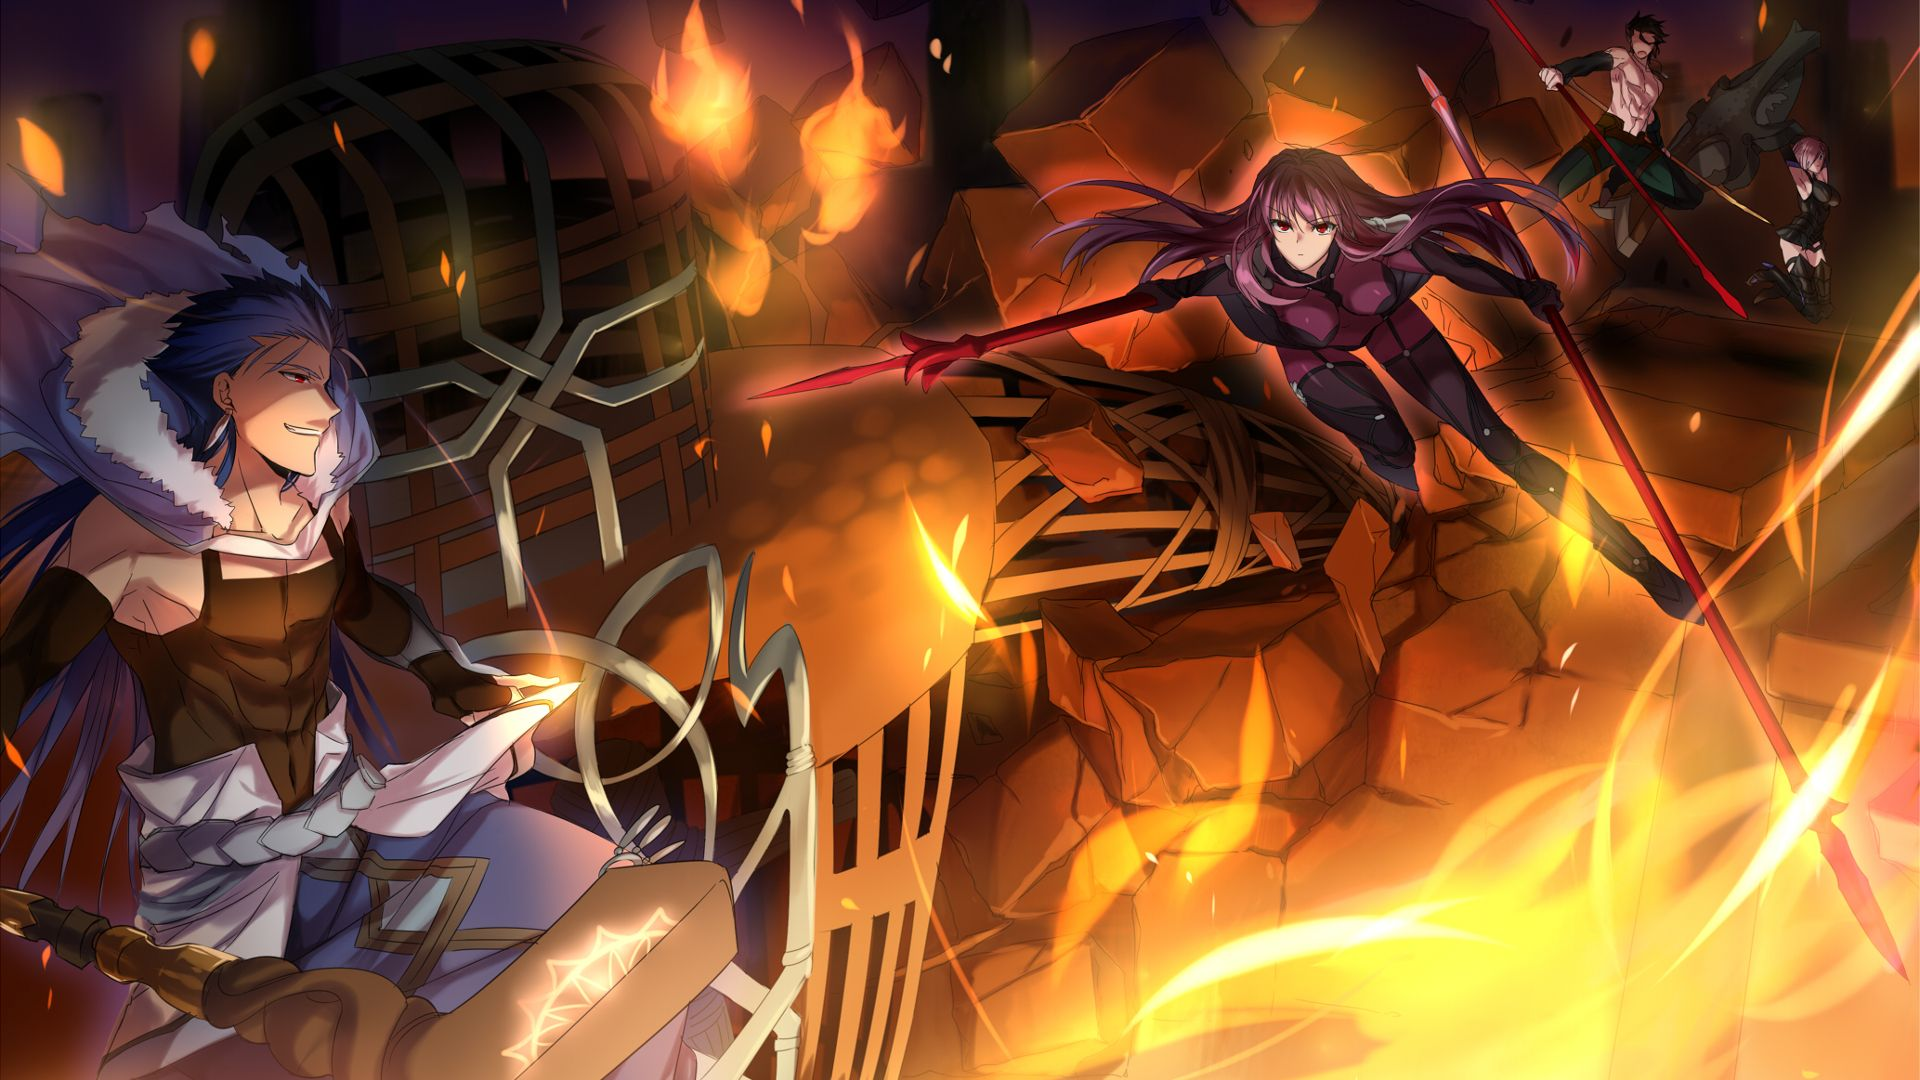 Fate Grand Order Computer Wallpapers Desktop Backgrounds 1920x1080 Id 693362 Scathach Fate Fate Grand Order Lancer Fate Fate grand order wallpaper